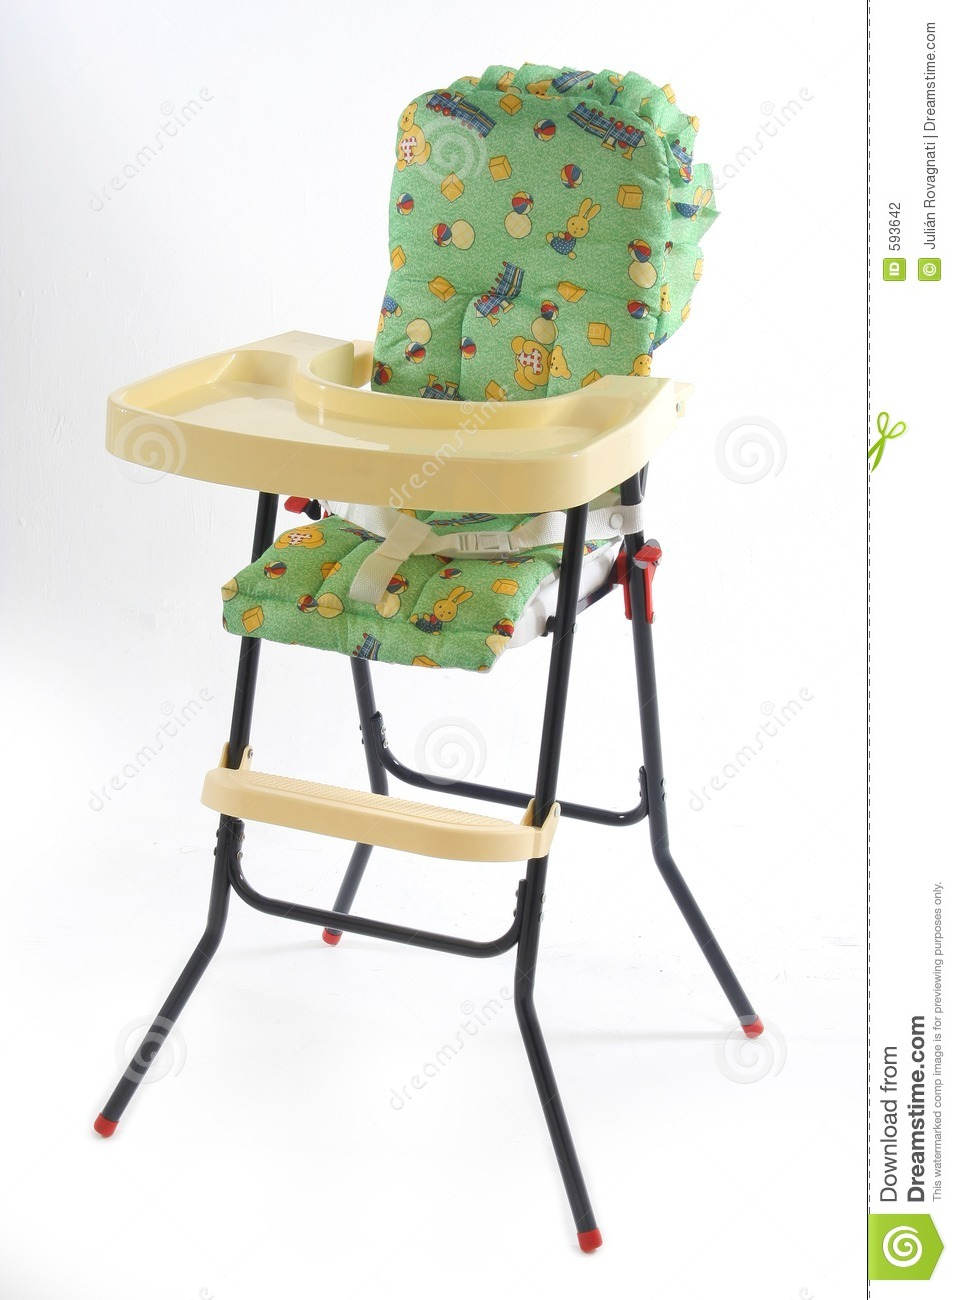 baby eating chair stock